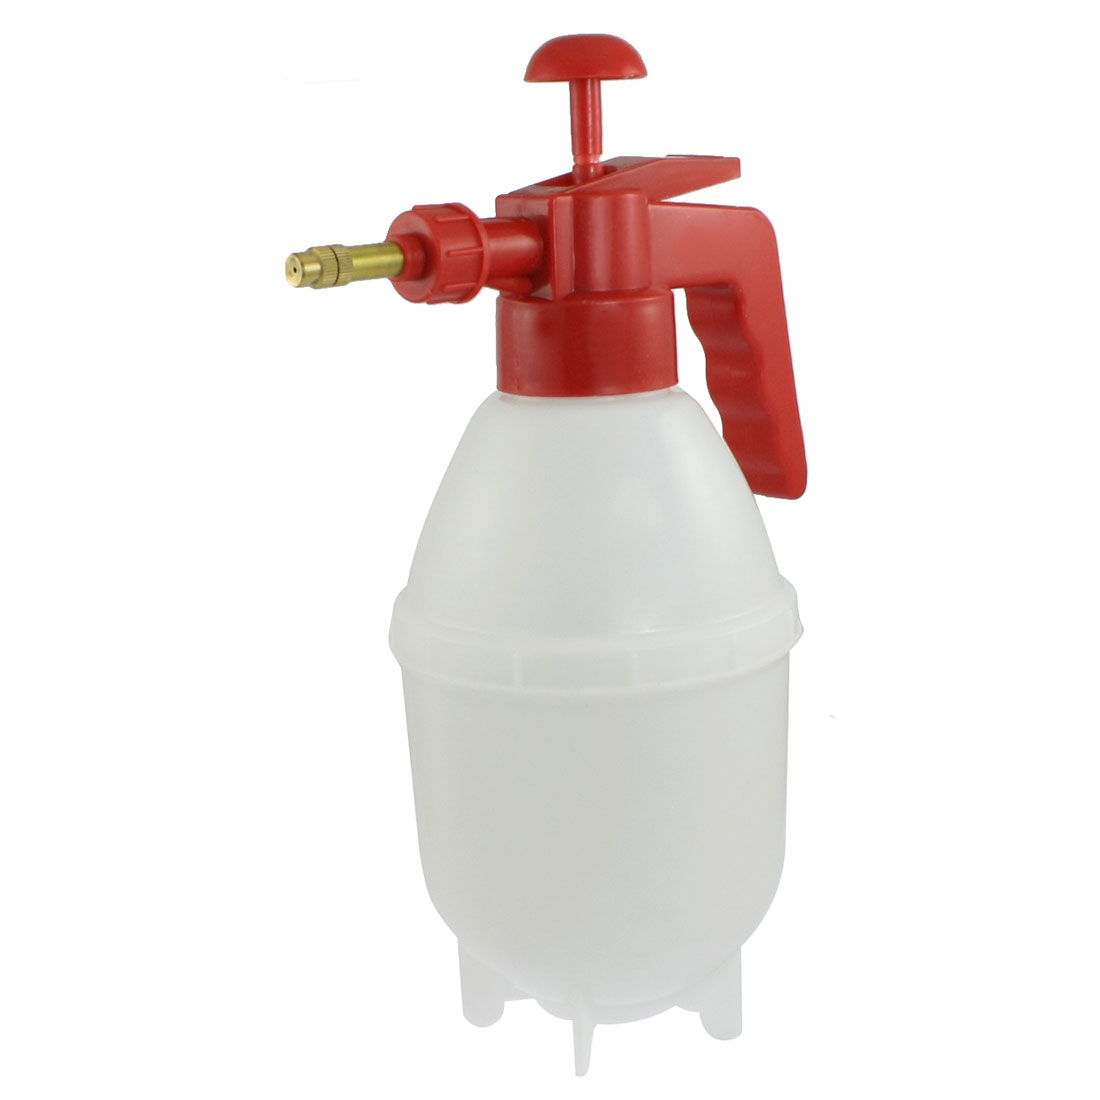 Plastic Handheld Pump Pressurized Water Spray Bottle Glass Cleaner Sprayer White